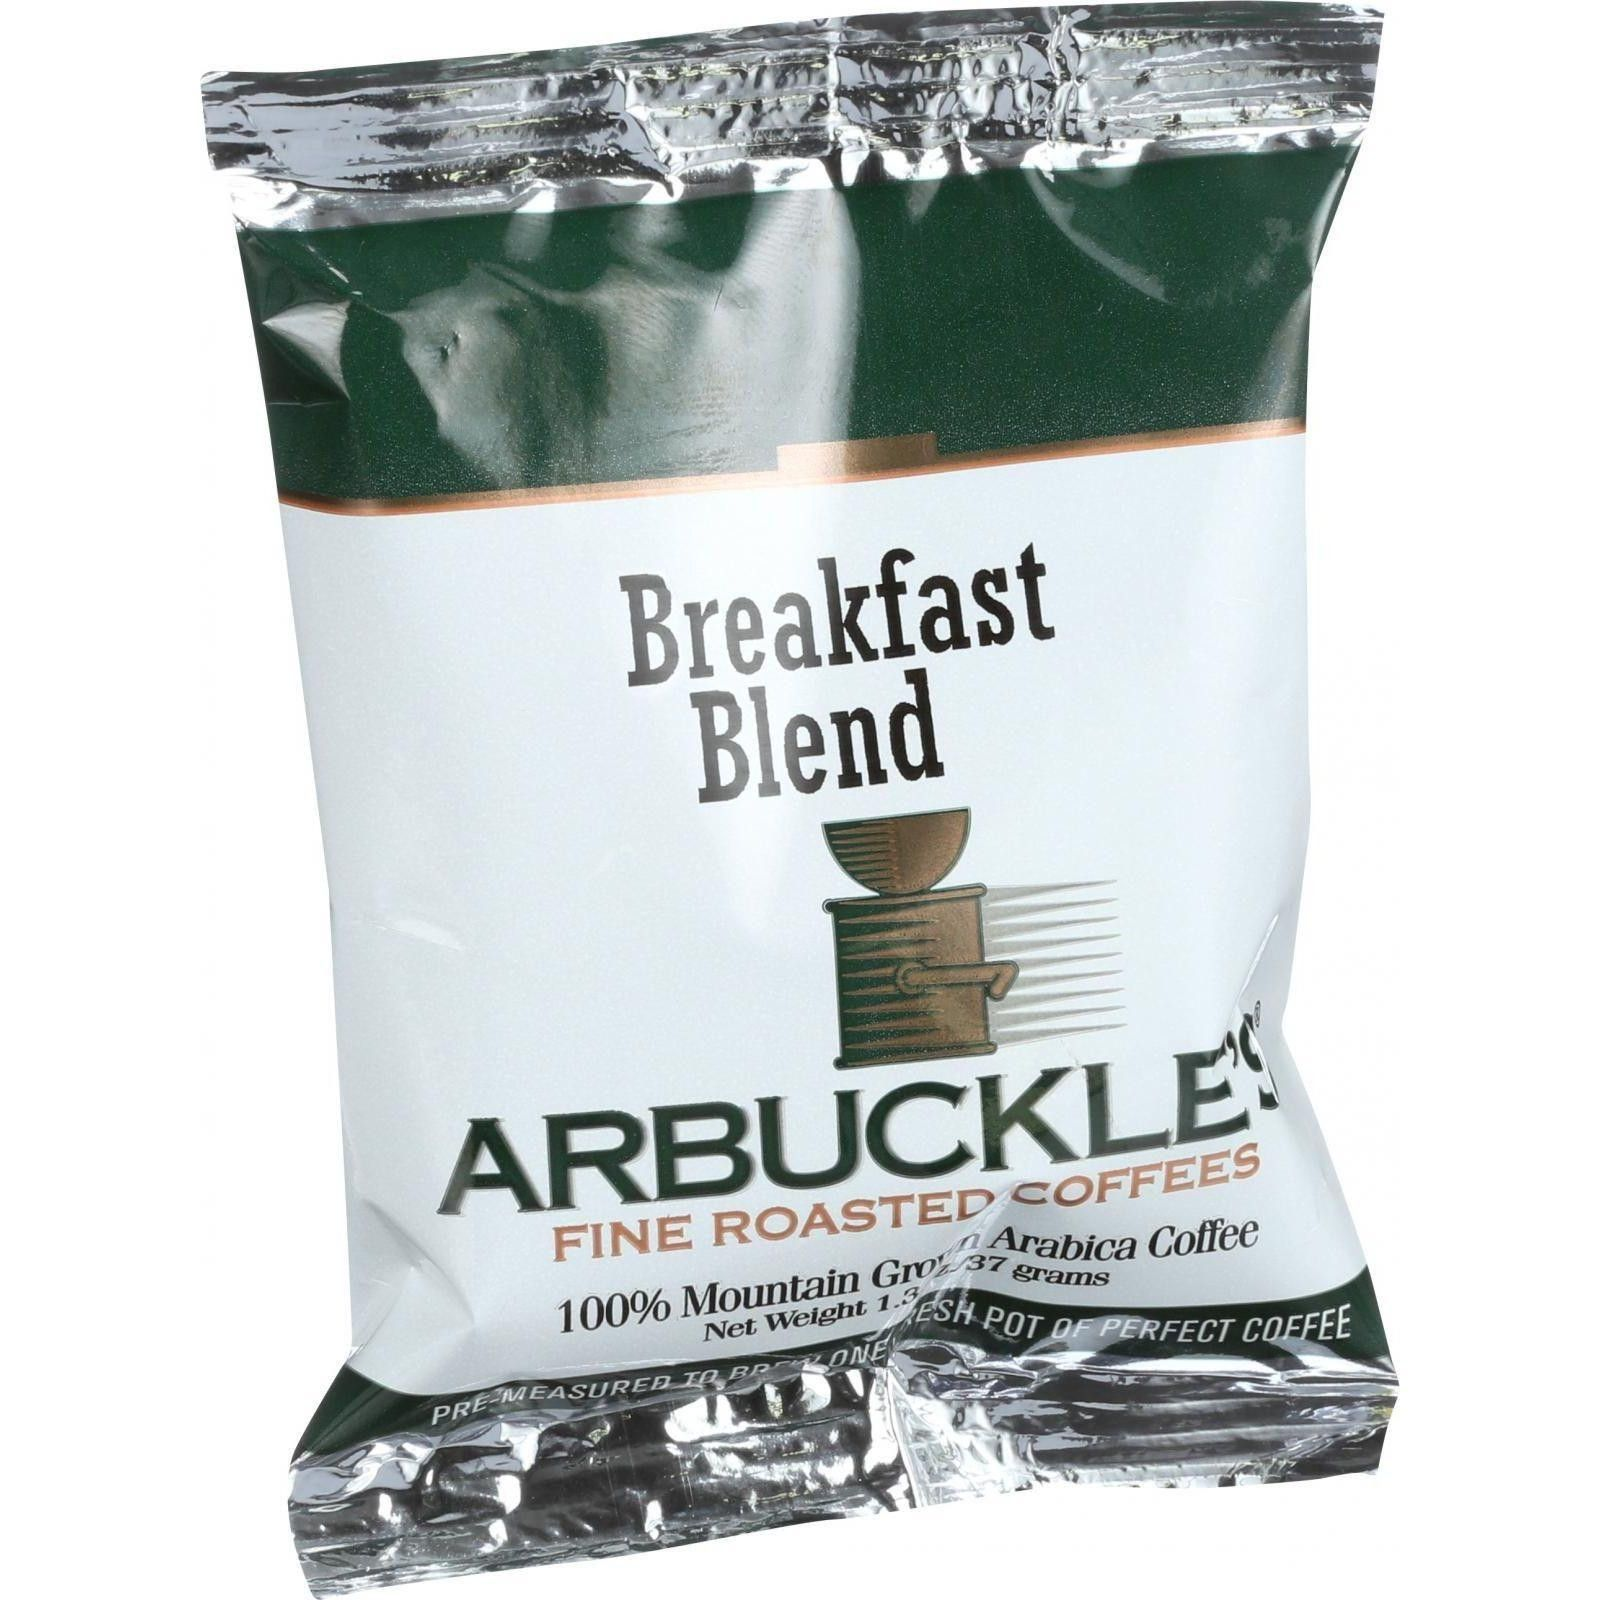 Arbuckles' Coffee - Breakfast Blend - 1.3 Oz - Case Of 10 | Products ...